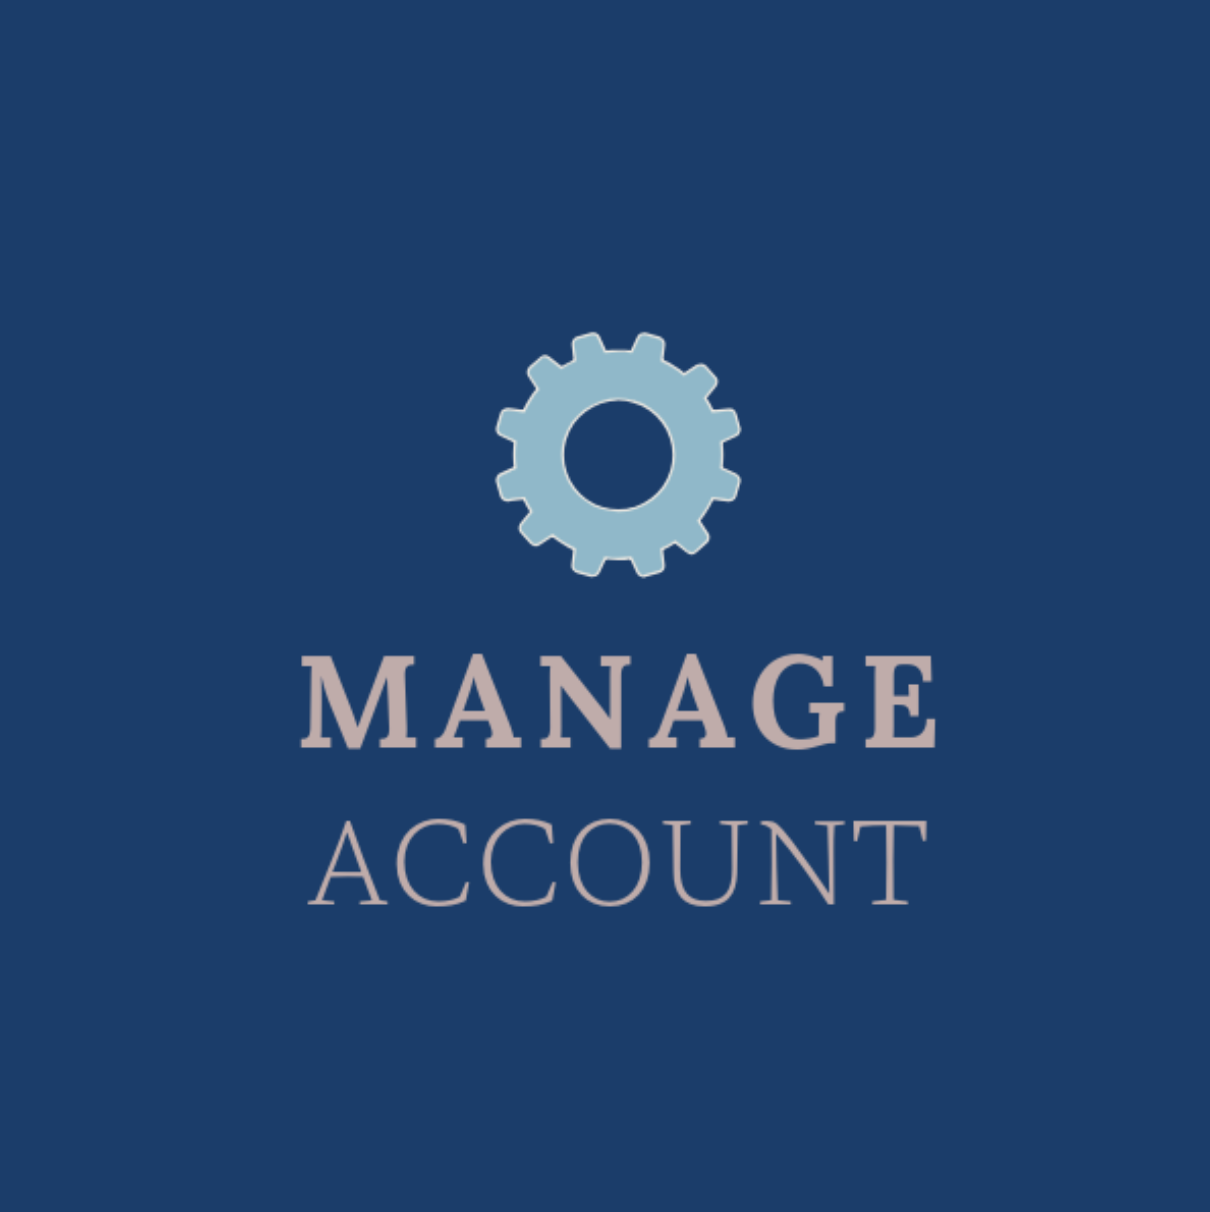 ONLE Manage Account